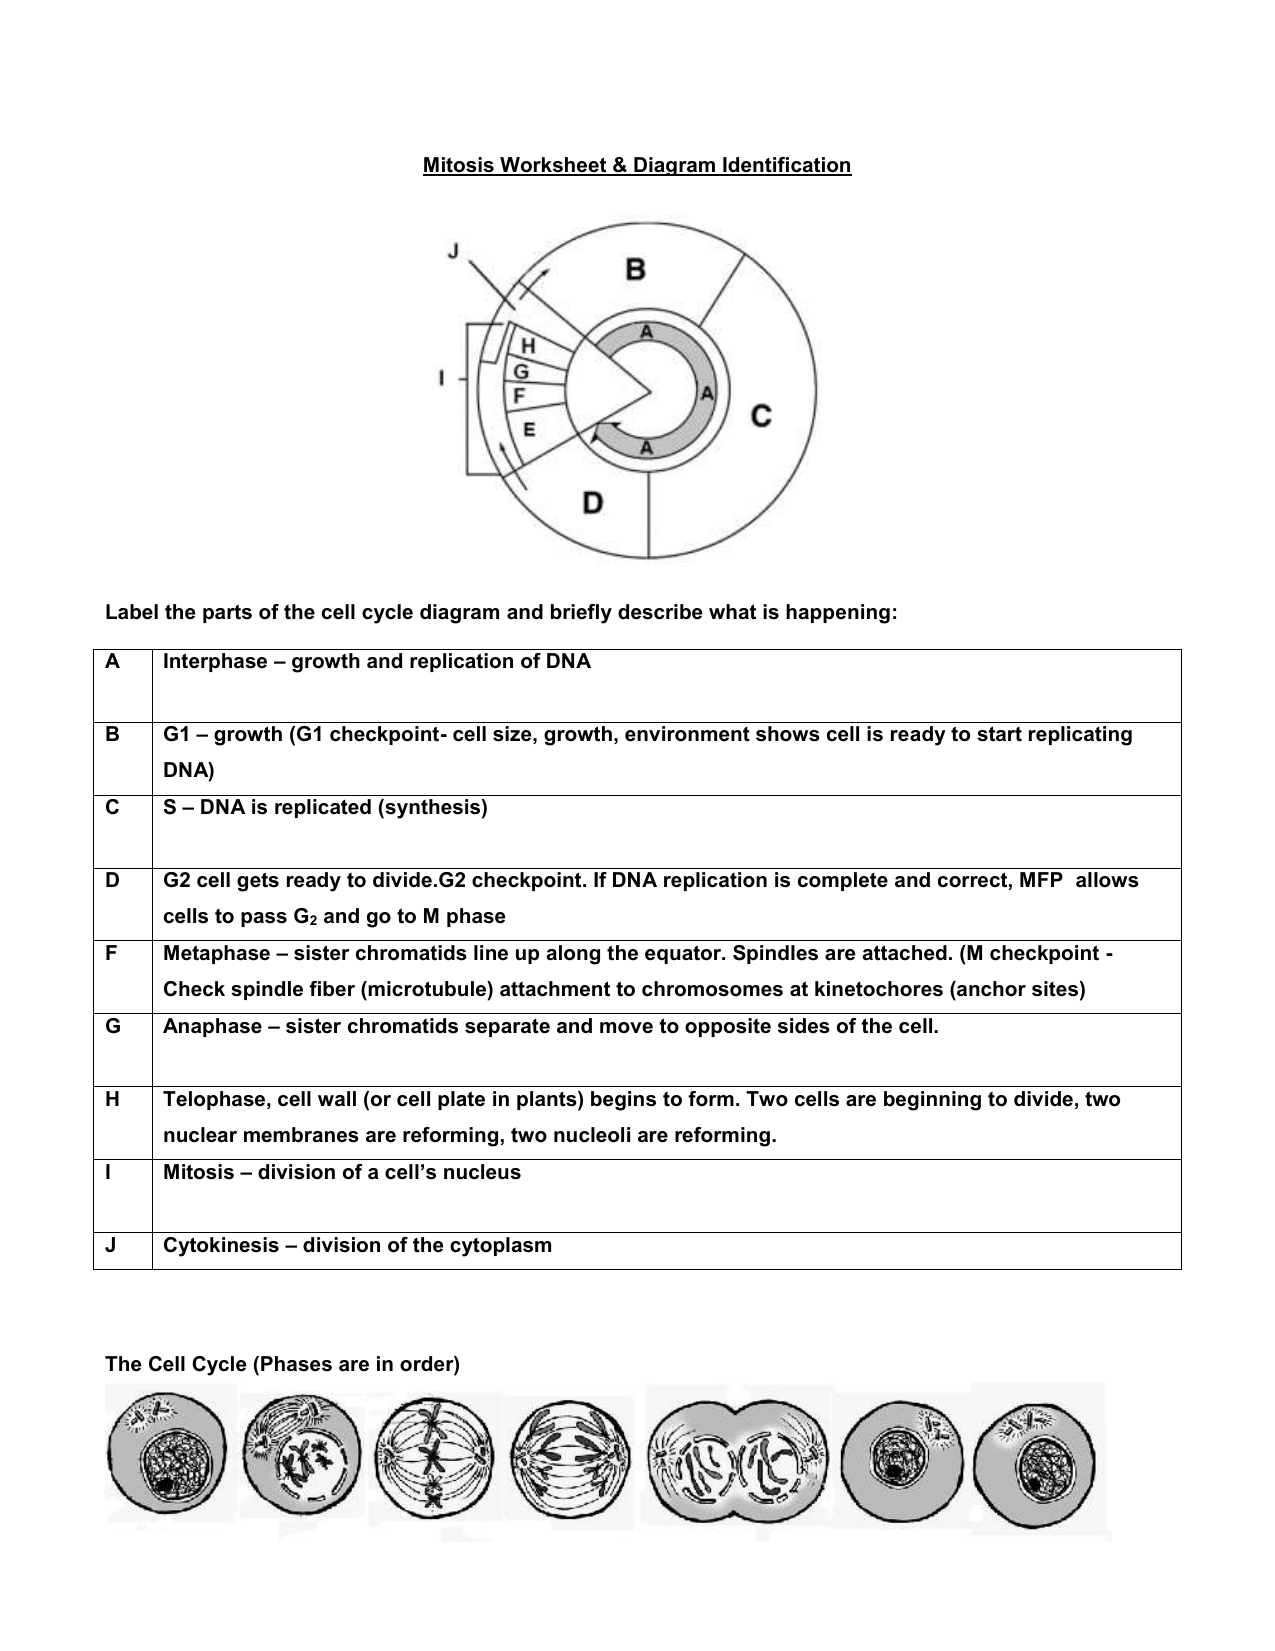 Mitosis Vs Meiosis Worksheet Answers Promotiontablecovers